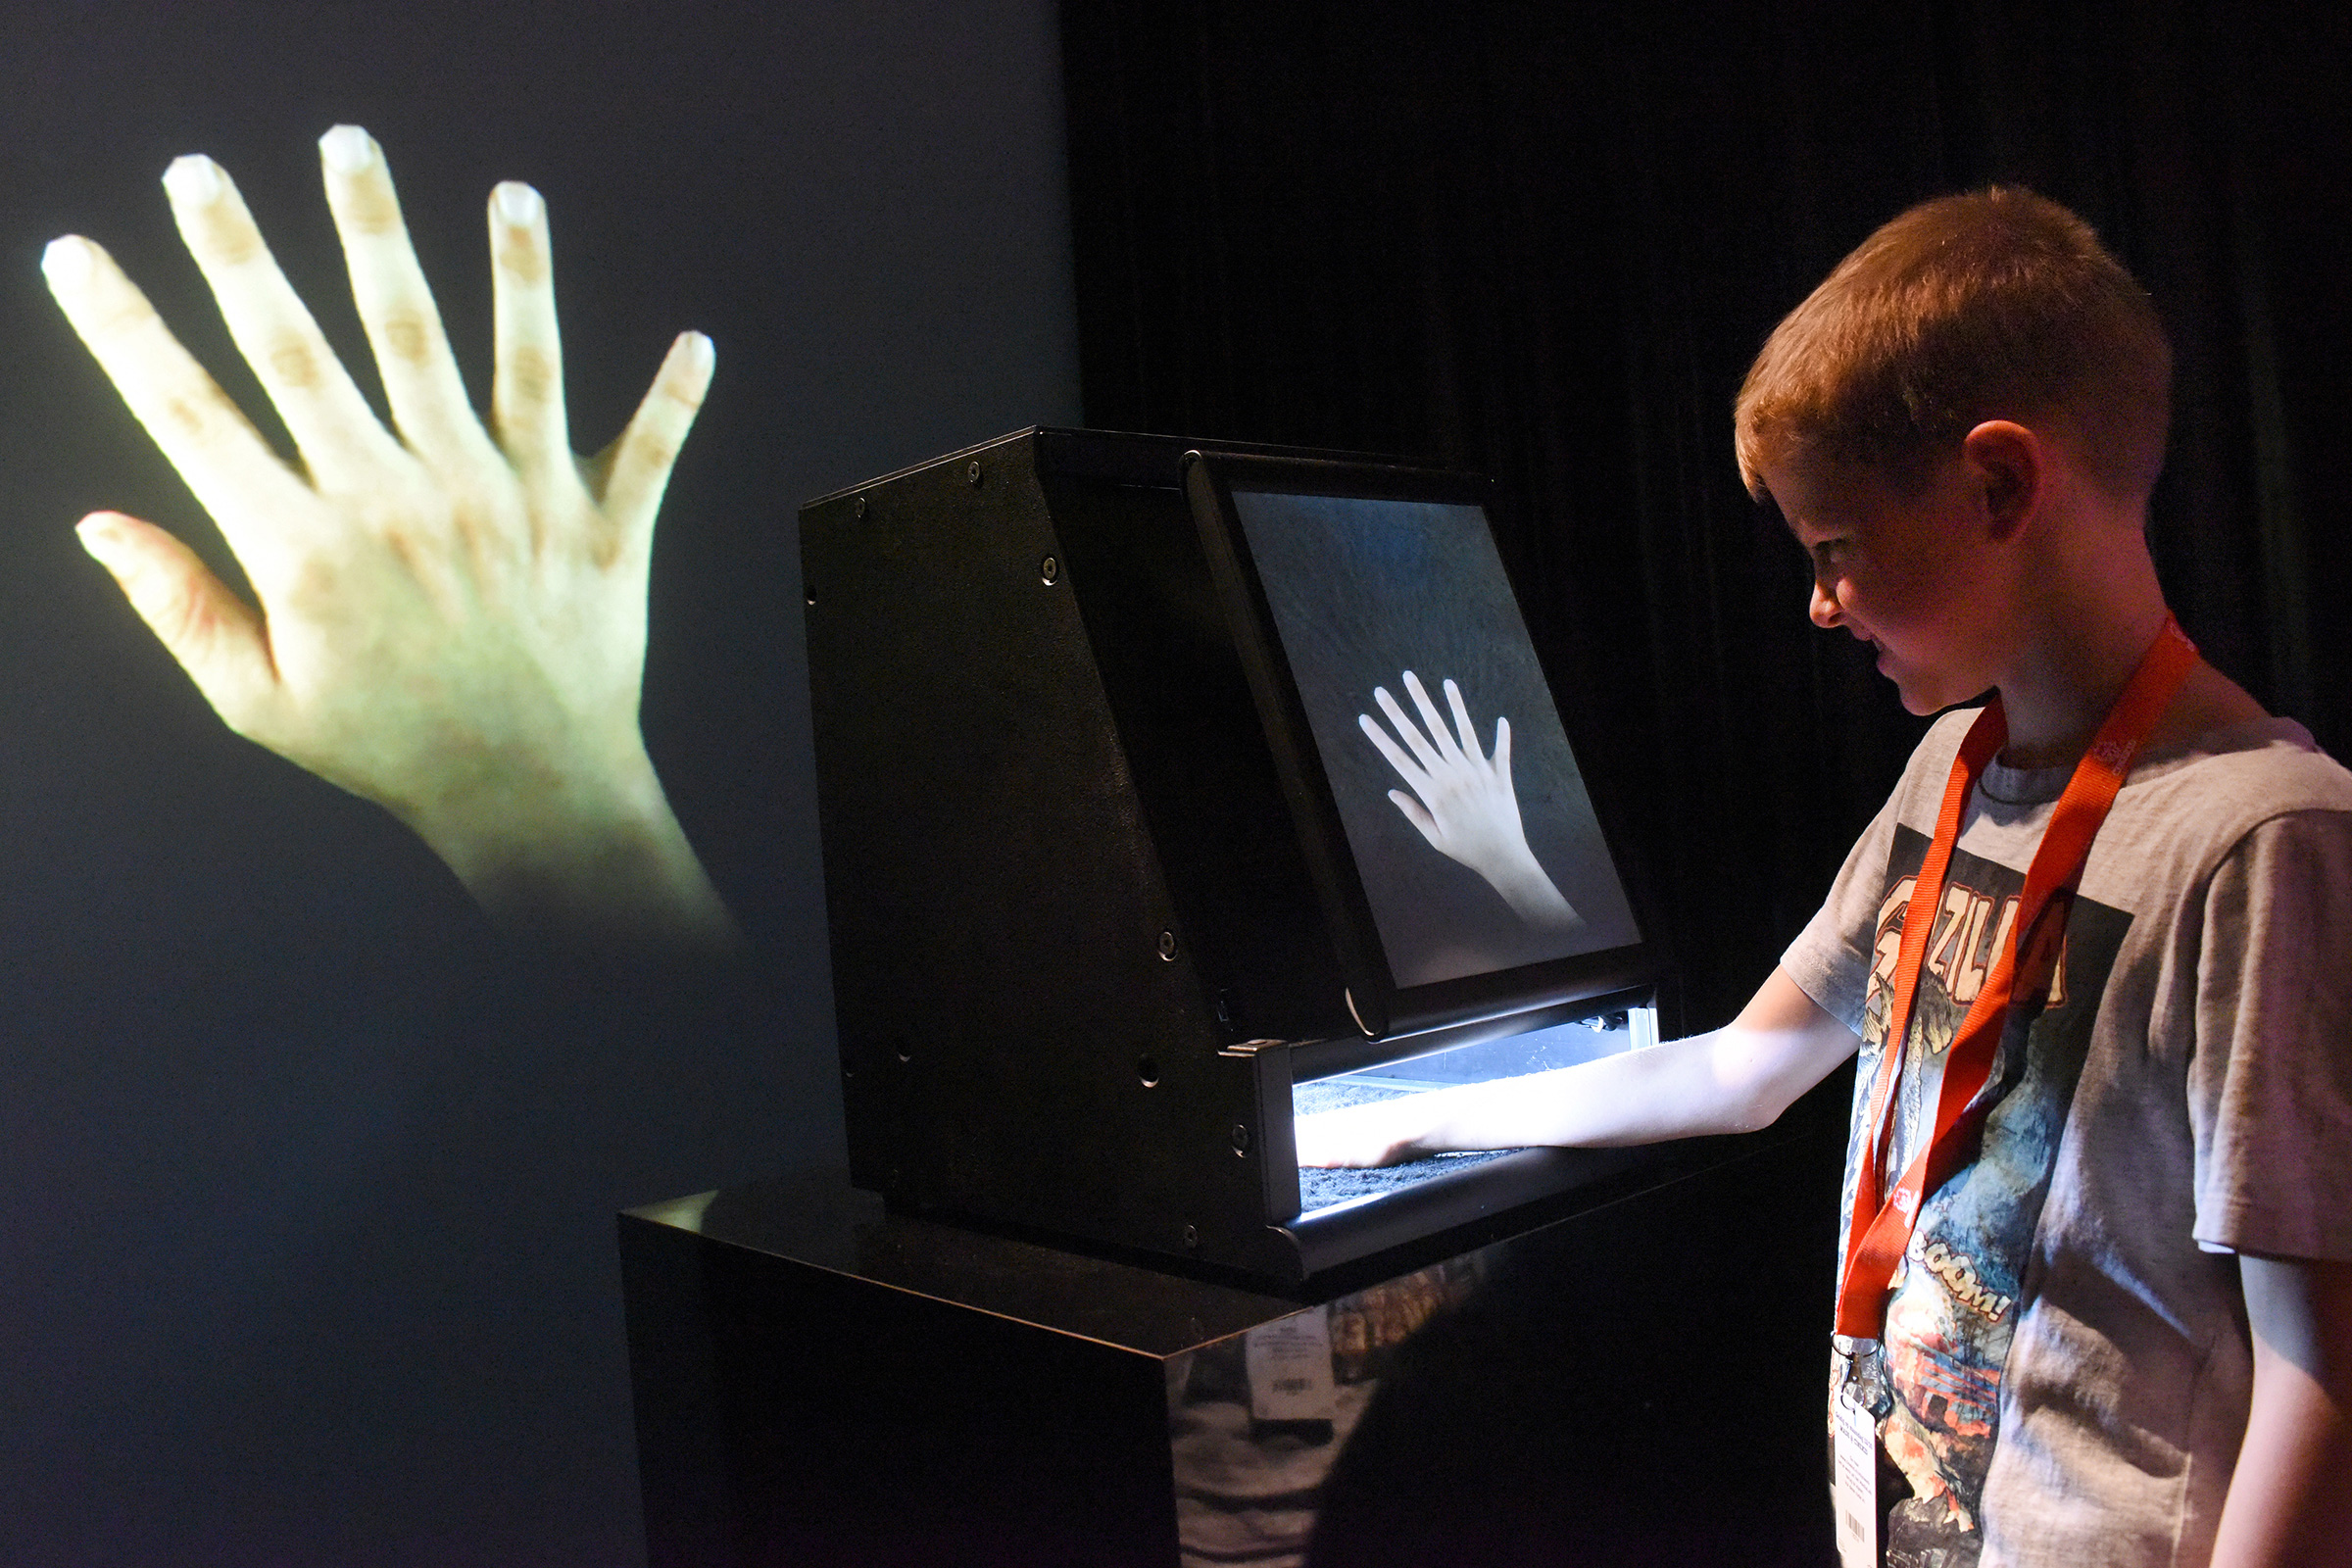 Augmented Hand Series Interactive Art By Golan Levin And